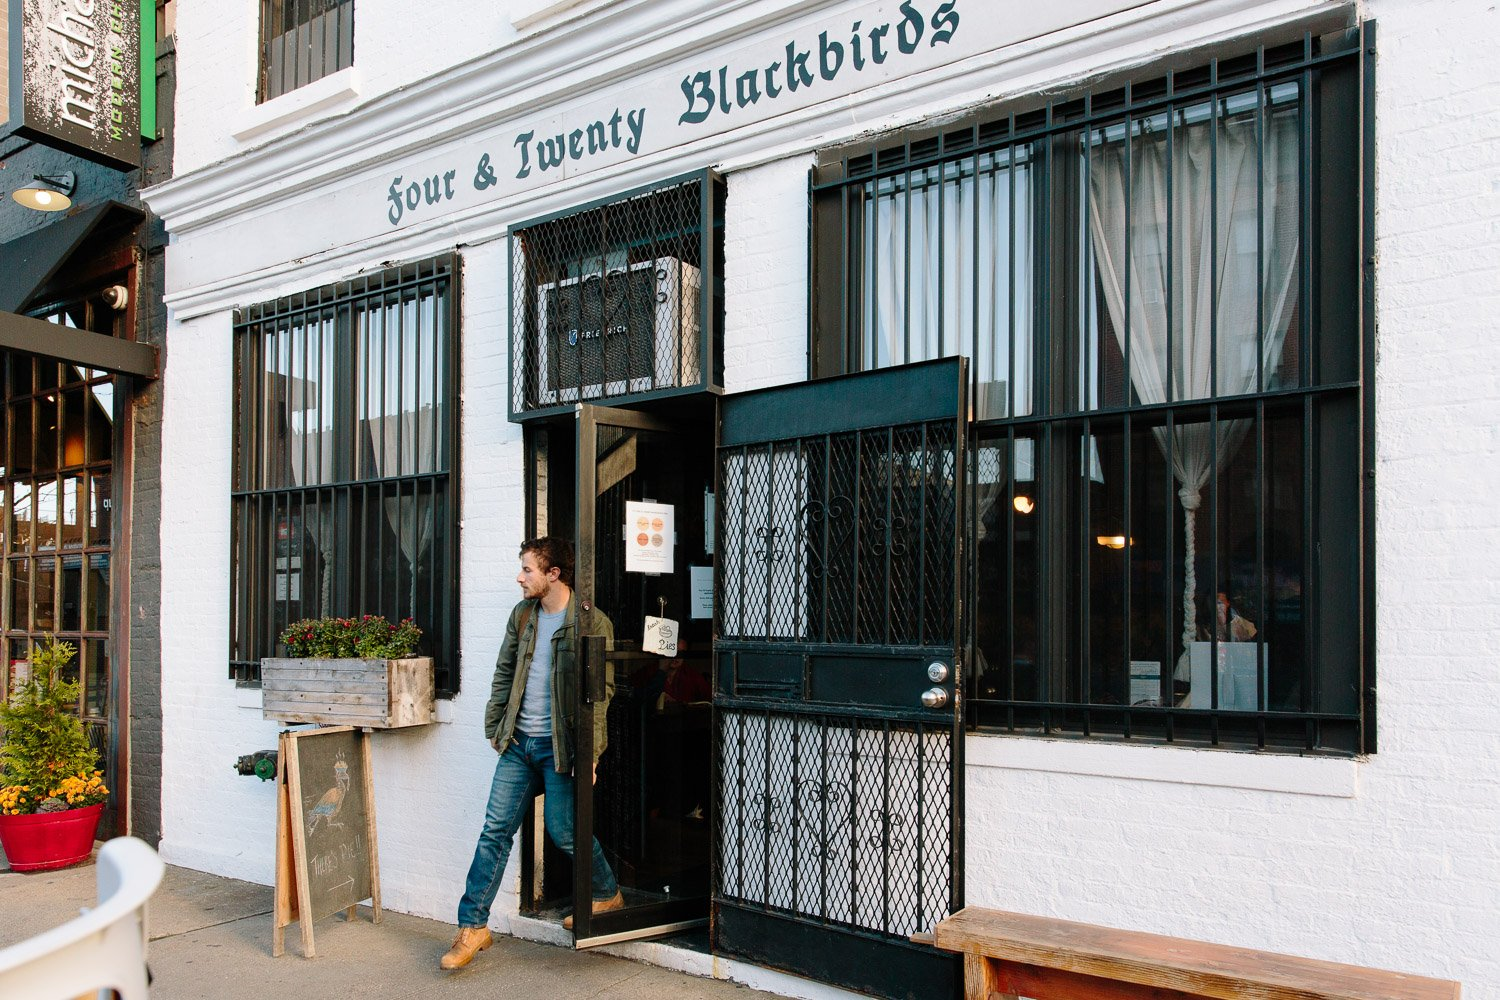 Pie Bakers: Four Twenty Blackbirds